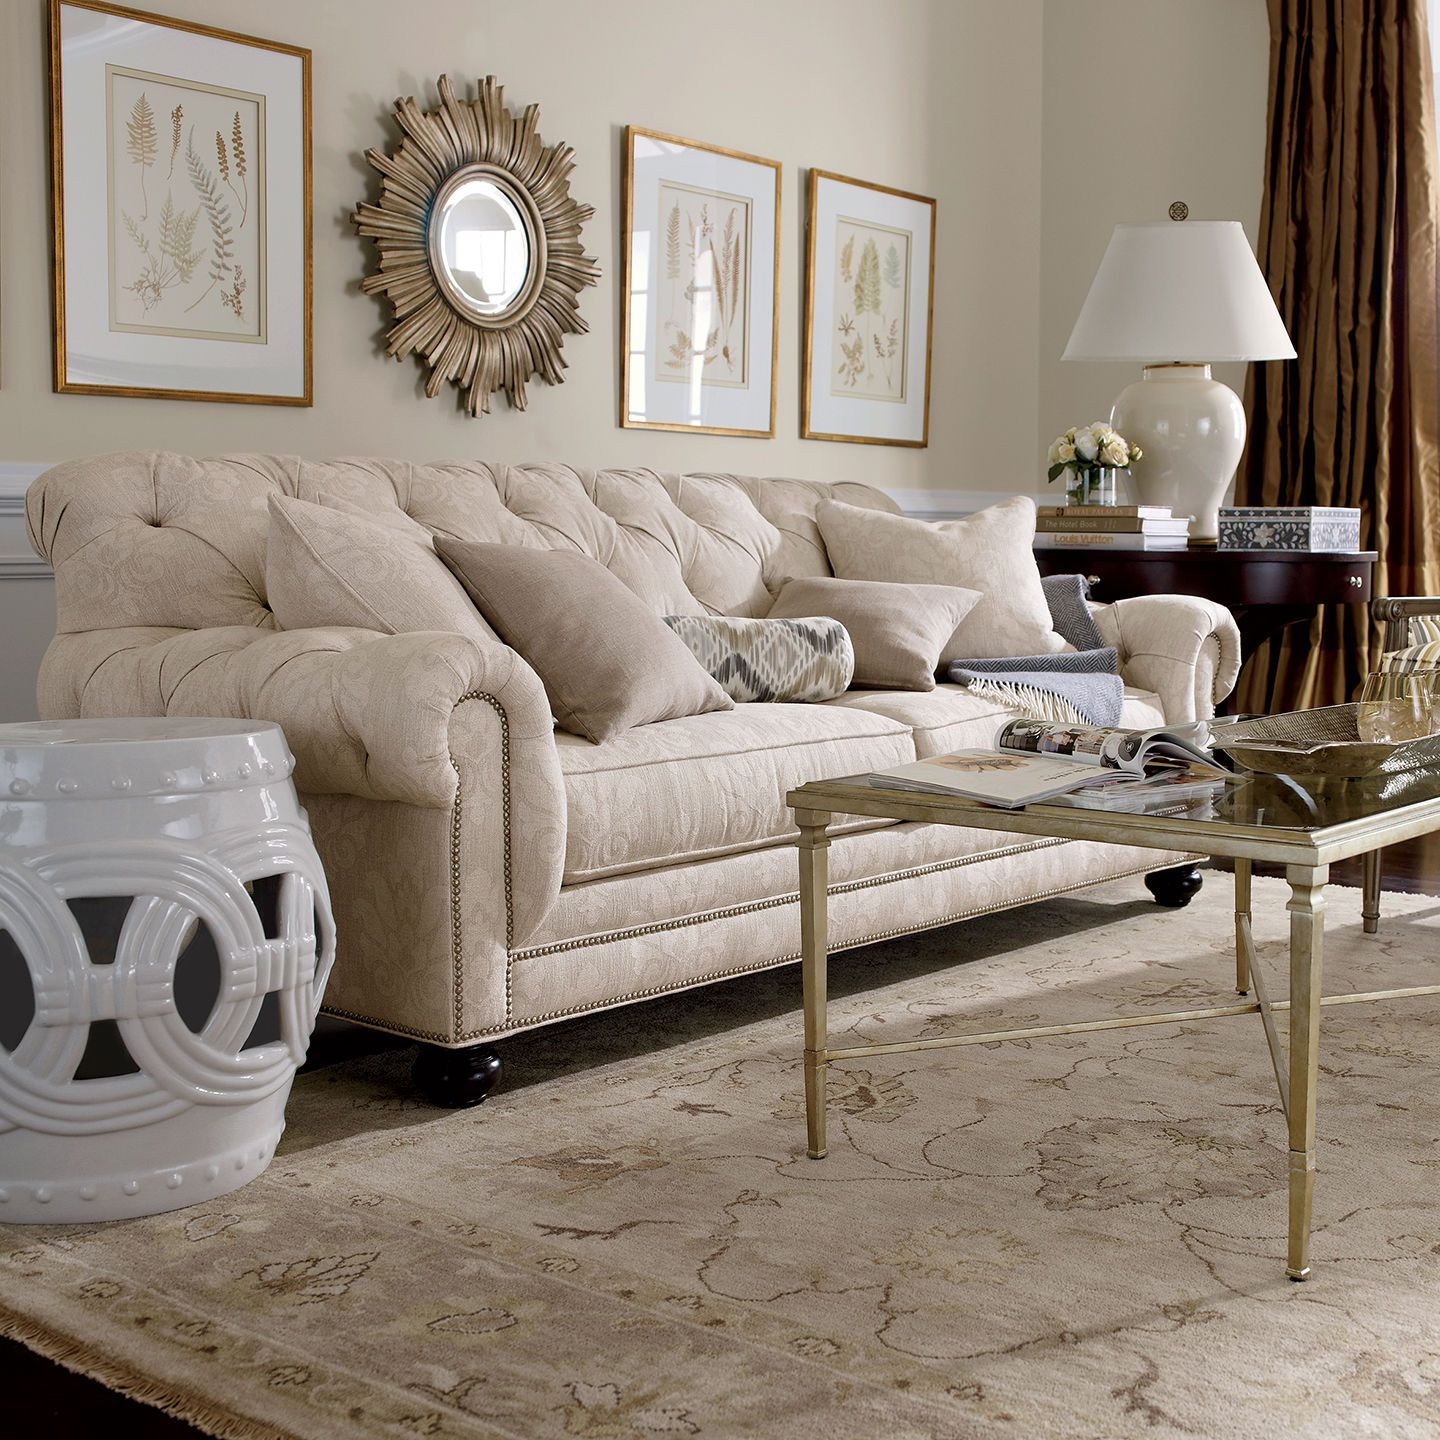 Neutral rooms. Ethan Allen living rooms. Ethan Allen furniture. Ethan Allen sofas.